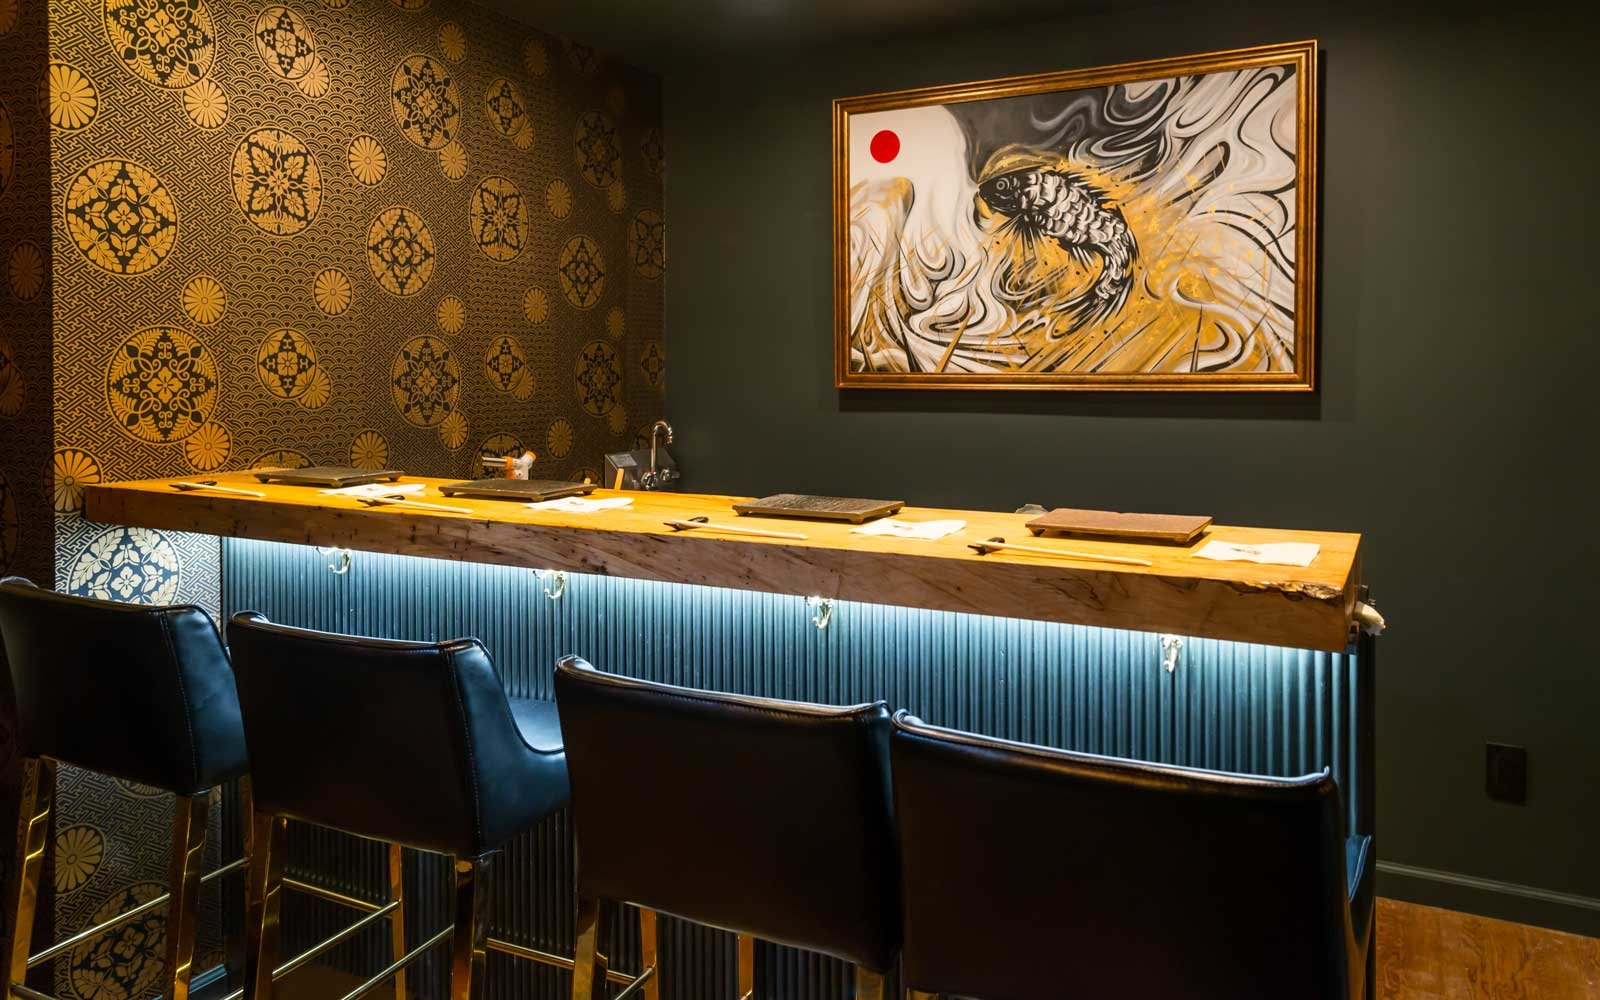 Sushi by Bou Suite 1001 includes a four-seat sushi bar.